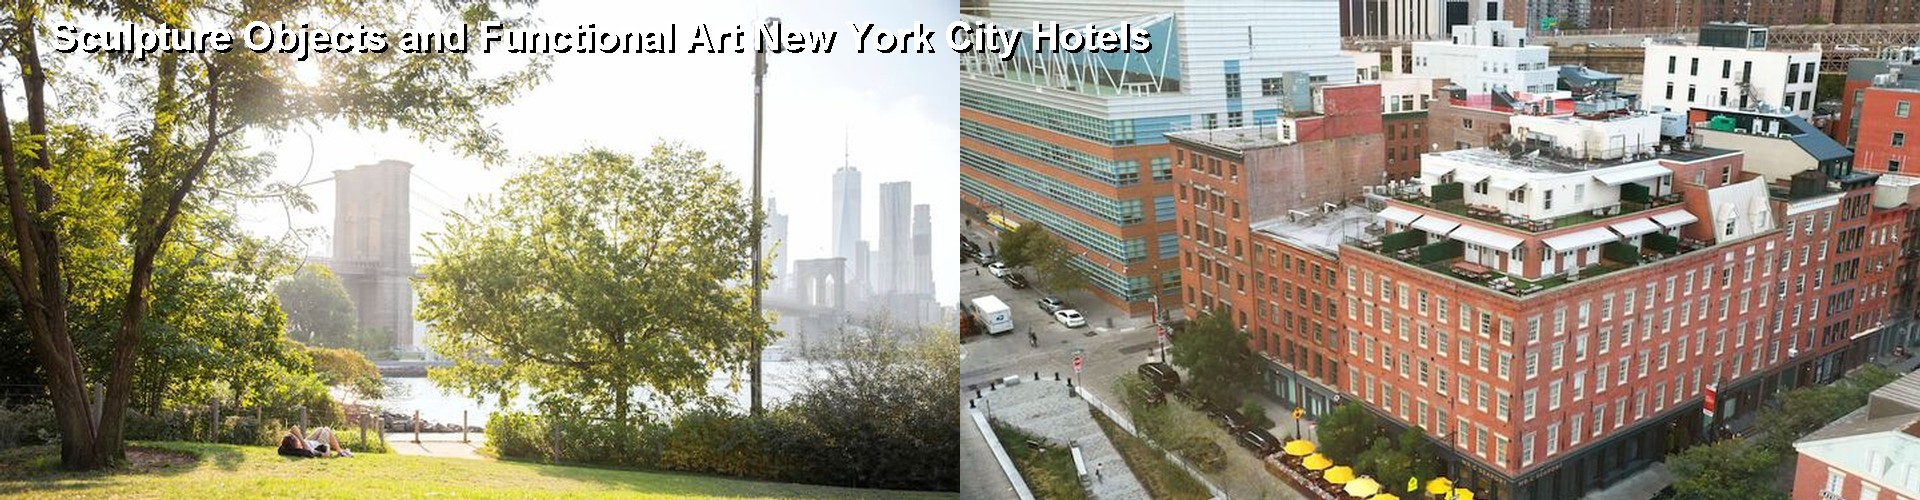 5 Best Hotels near Sculpture Objects and Functional Art New York City